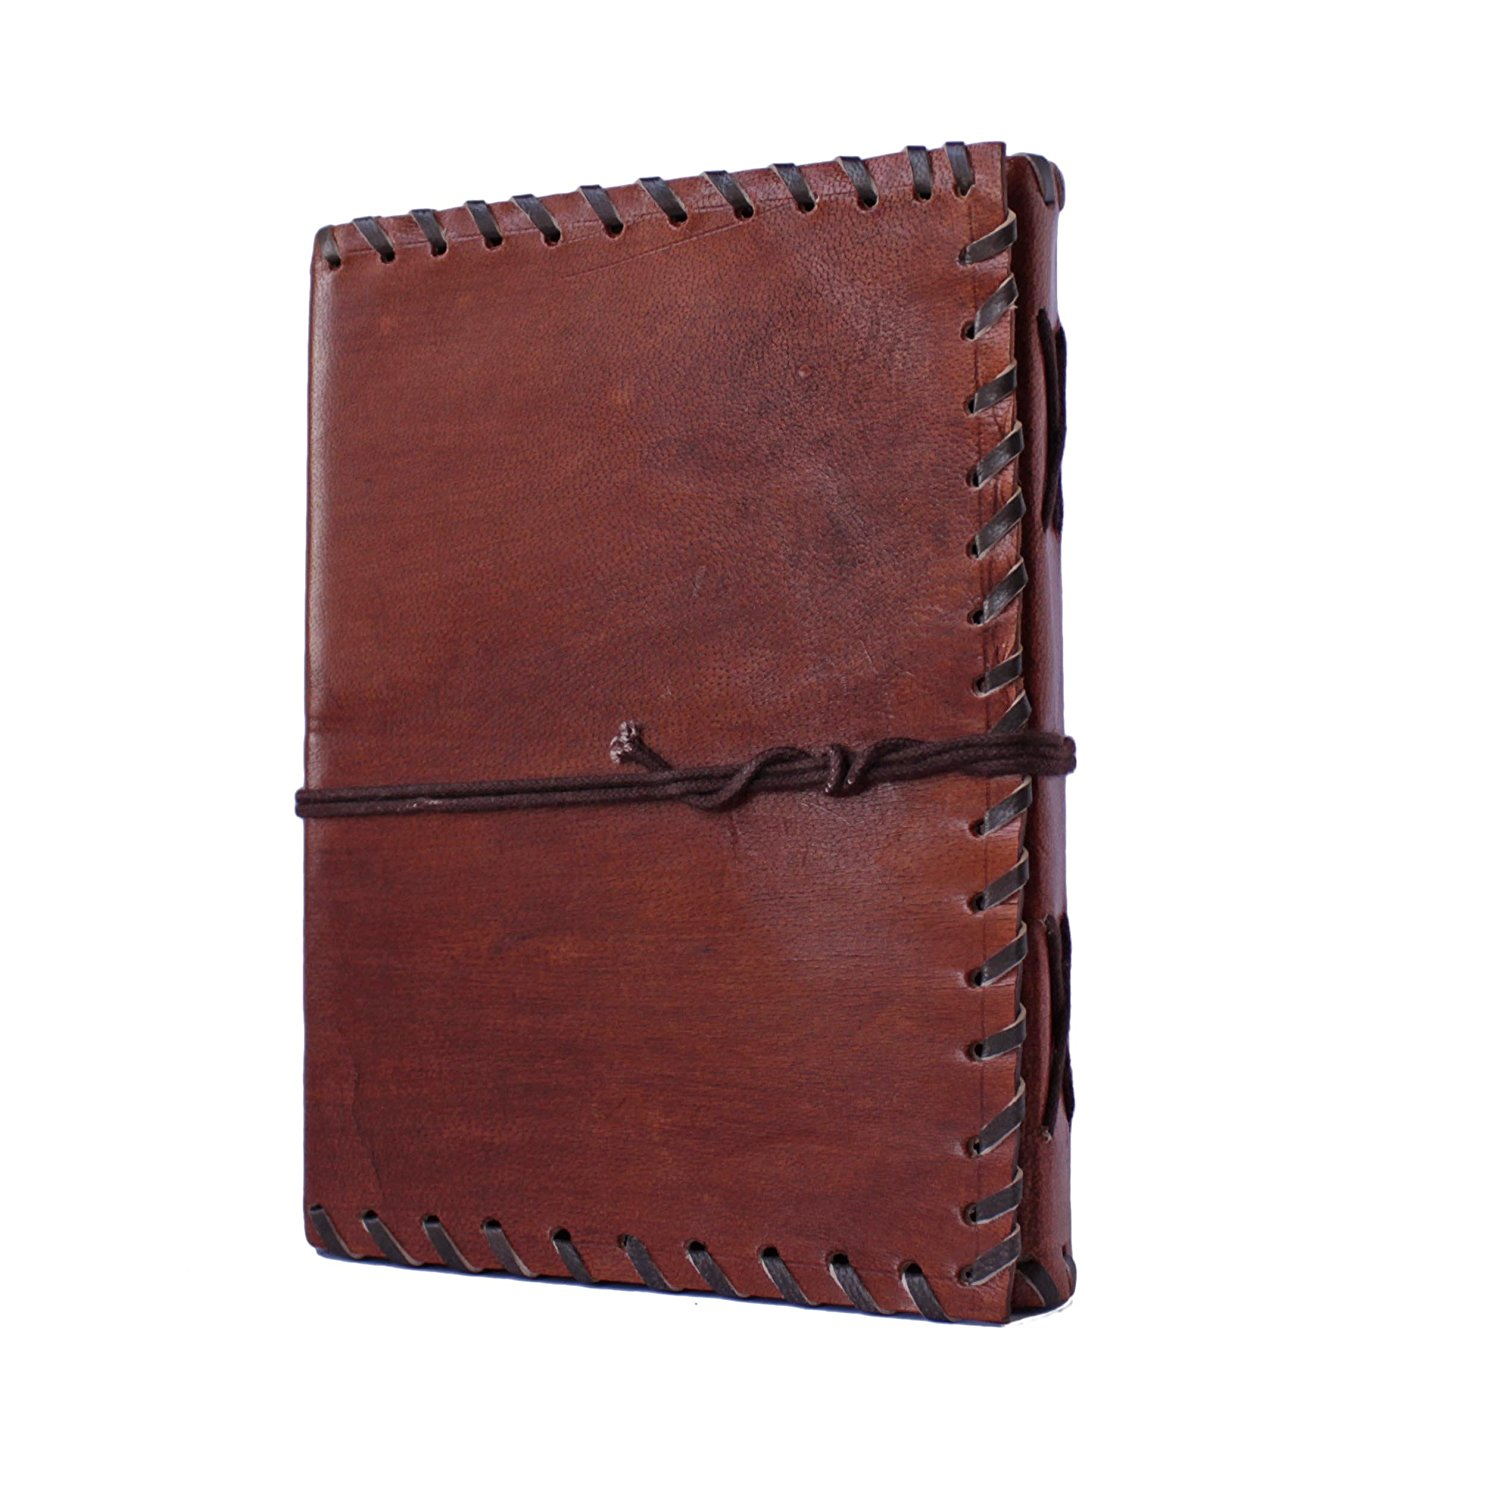 Christmas Gifts Genuine Leather Journal / Personal Diary / Writing Notebook / Scrap Book/ Doodle Book / Travel Book Handmade By Artisans Of India